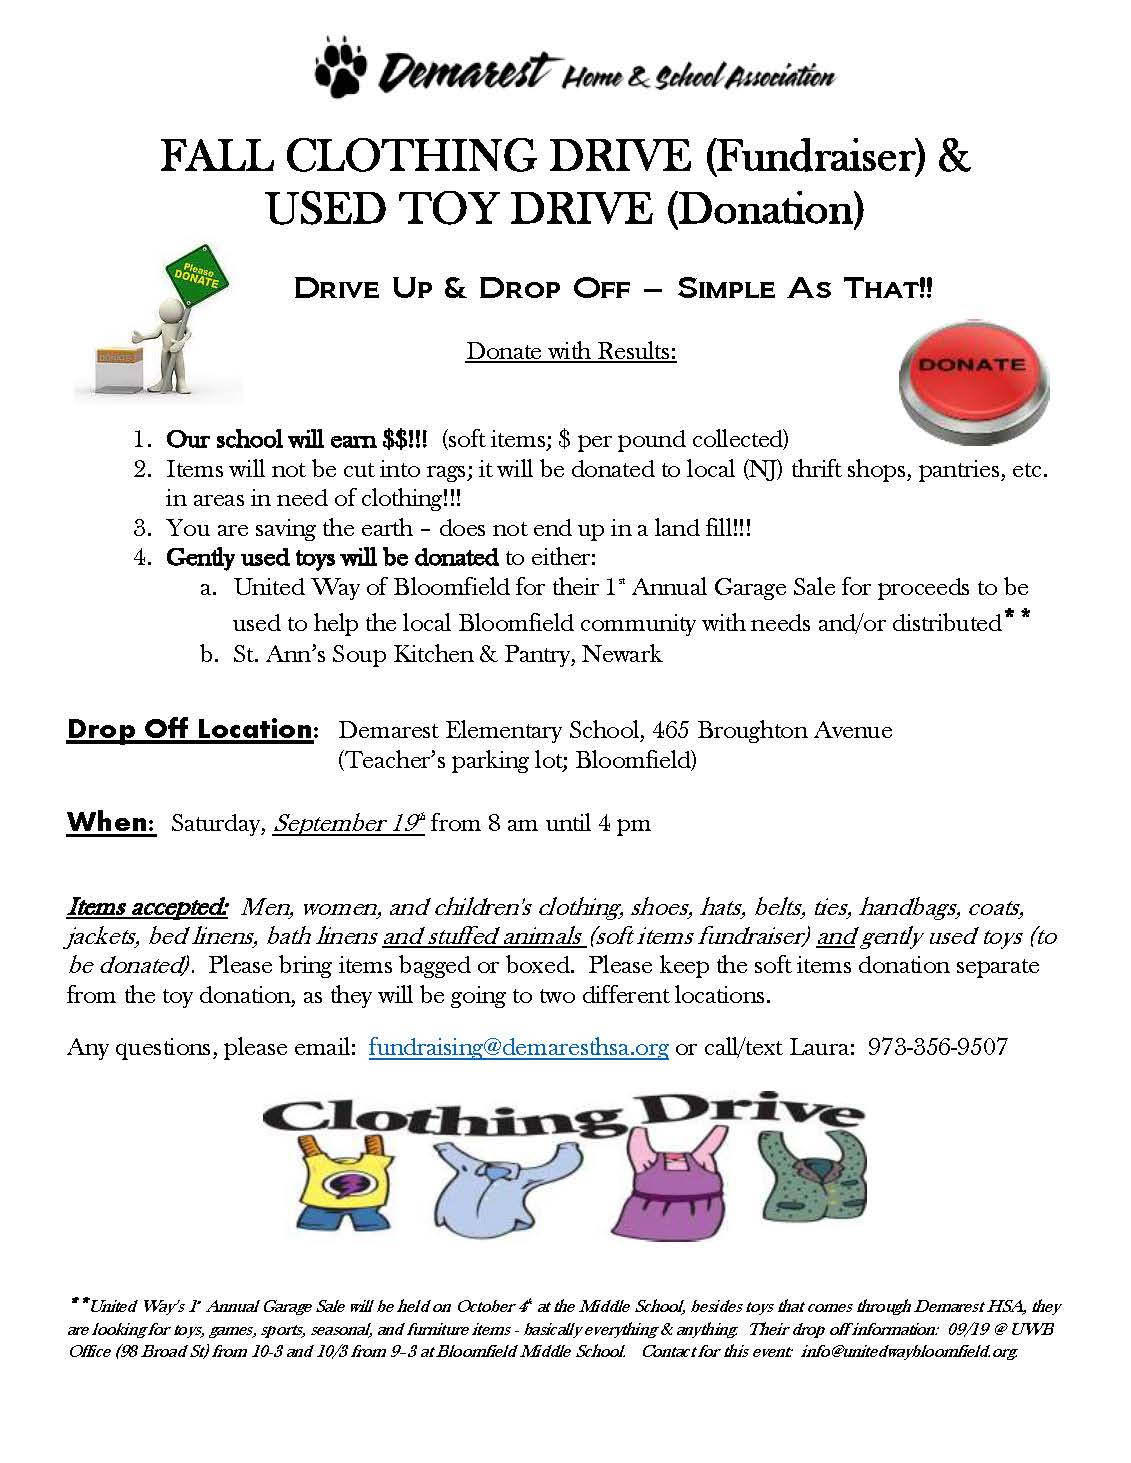 FALL CLOTHING DRIVE (Fundraiser) and USED TOY DRIVE (Donation)